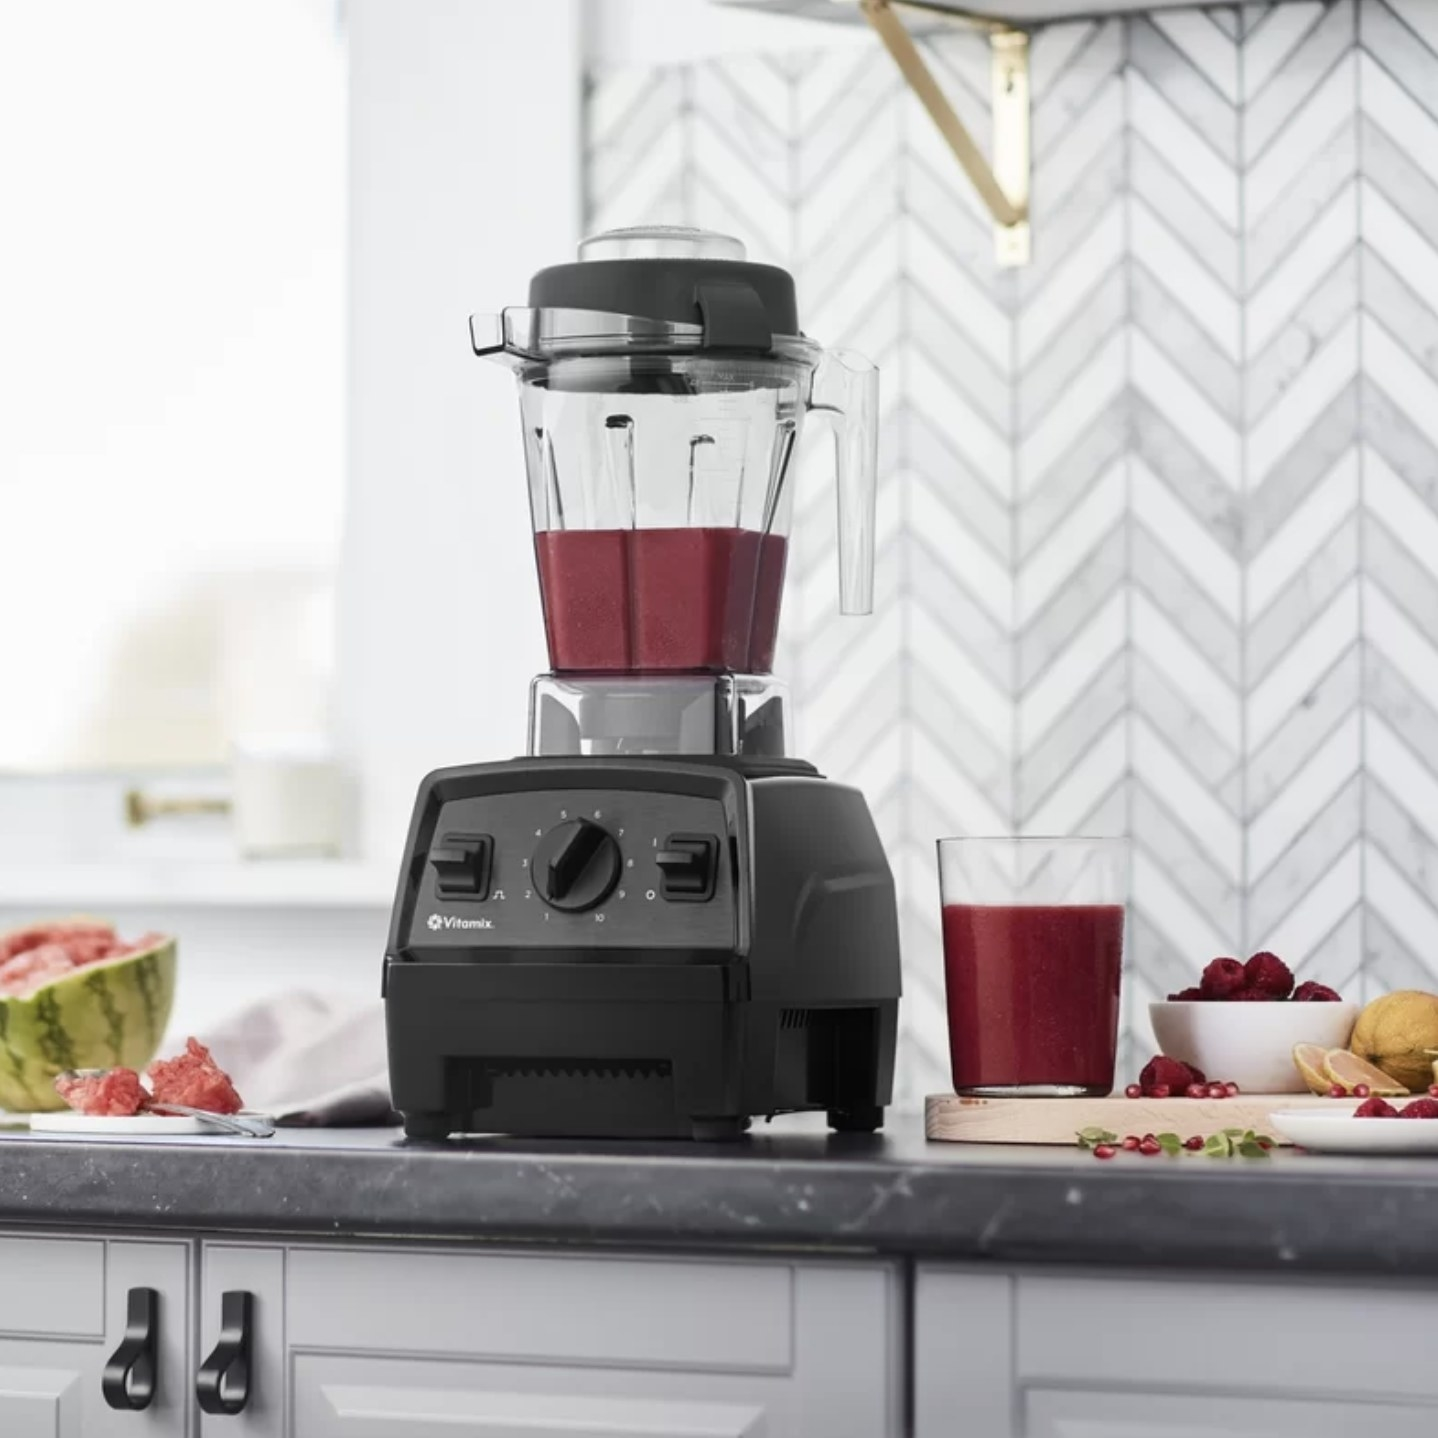 The Vitamix on a kitchen counter